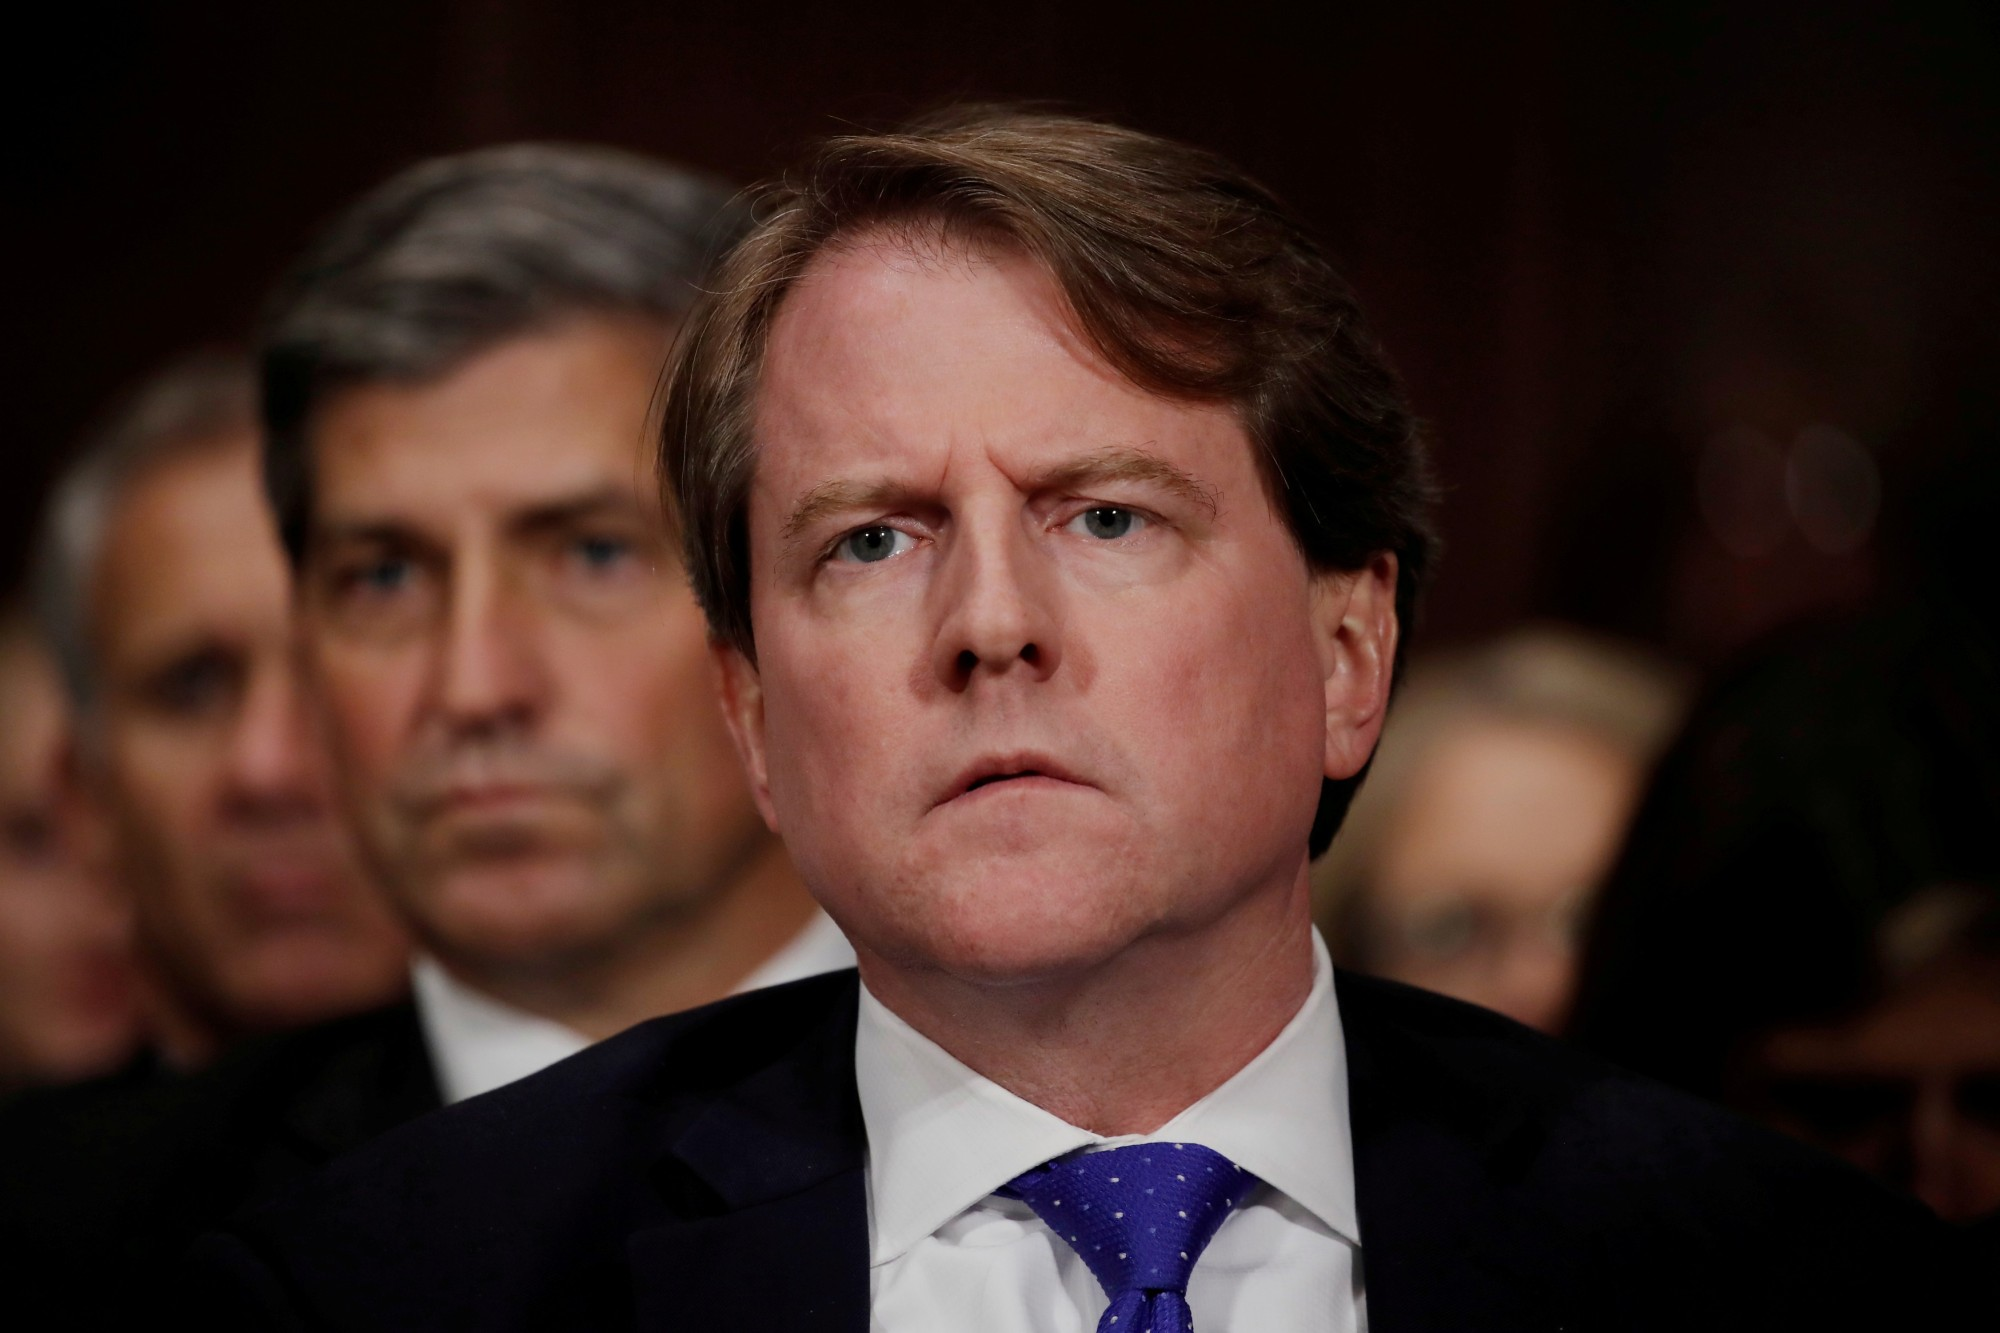 Then-White House counsel Don Mcgahn listens to U.S. Supreme Court nominee Brett Kavanaugh testify before a Senate Judiciary Committee confirmation hearing on Capitol Hill in Washington in September 2018. | REUTERS